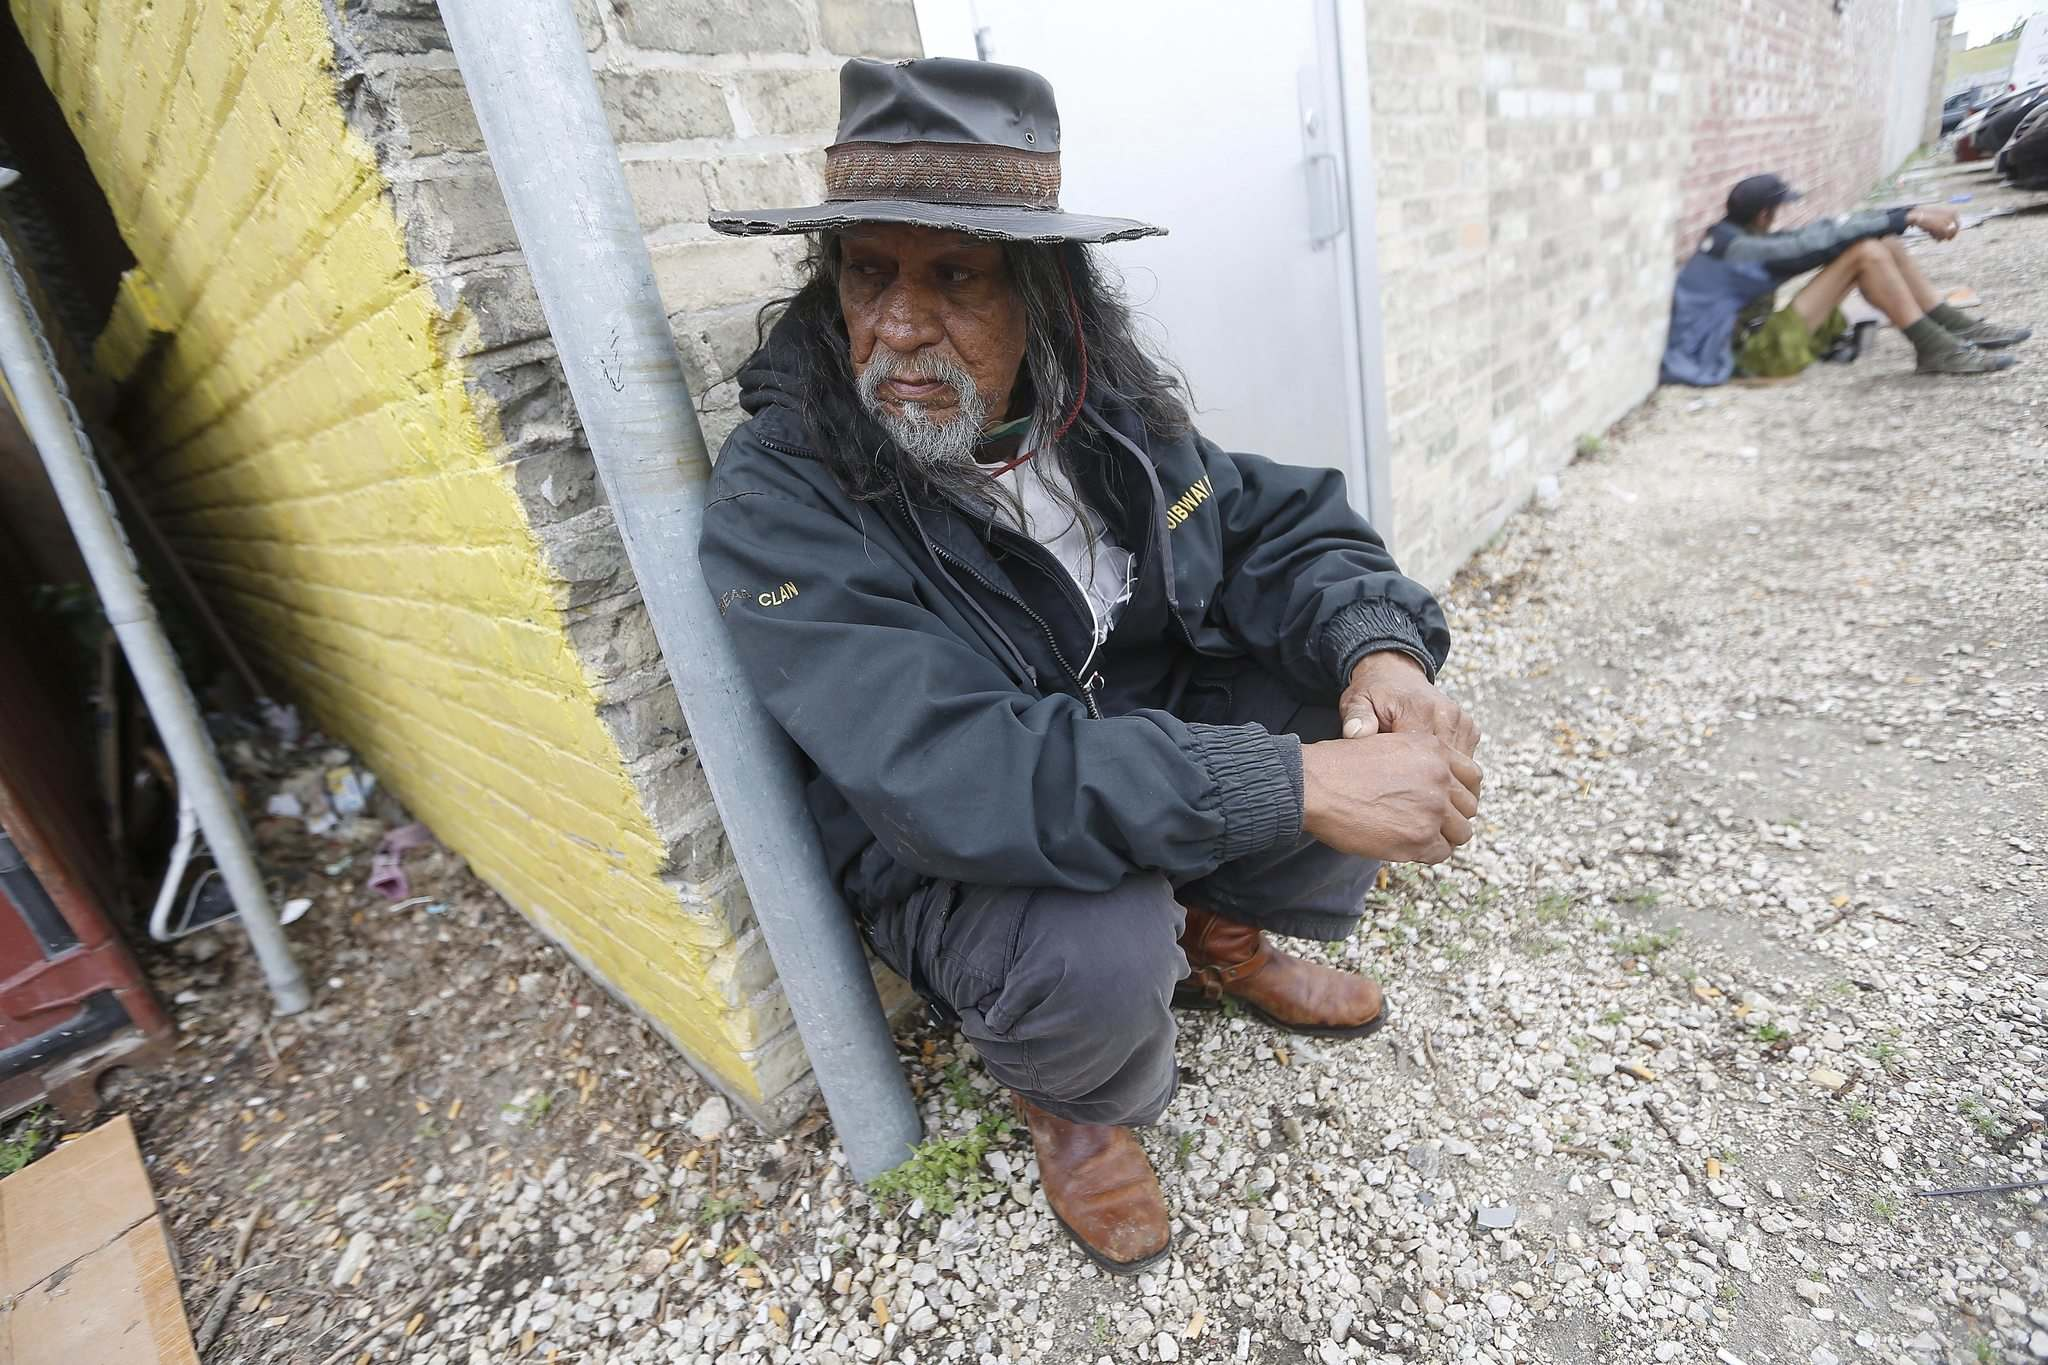 JOHN WOODS / WINNIPEG FREE PRESS</p><p>Gordon Kent waits to get into Siloam Mission on Monday. &#8216;The creator gave us land to live off and, next thing you know, you&rsquo;ve got no place to live,&rsquo; Kent said.</p></p>